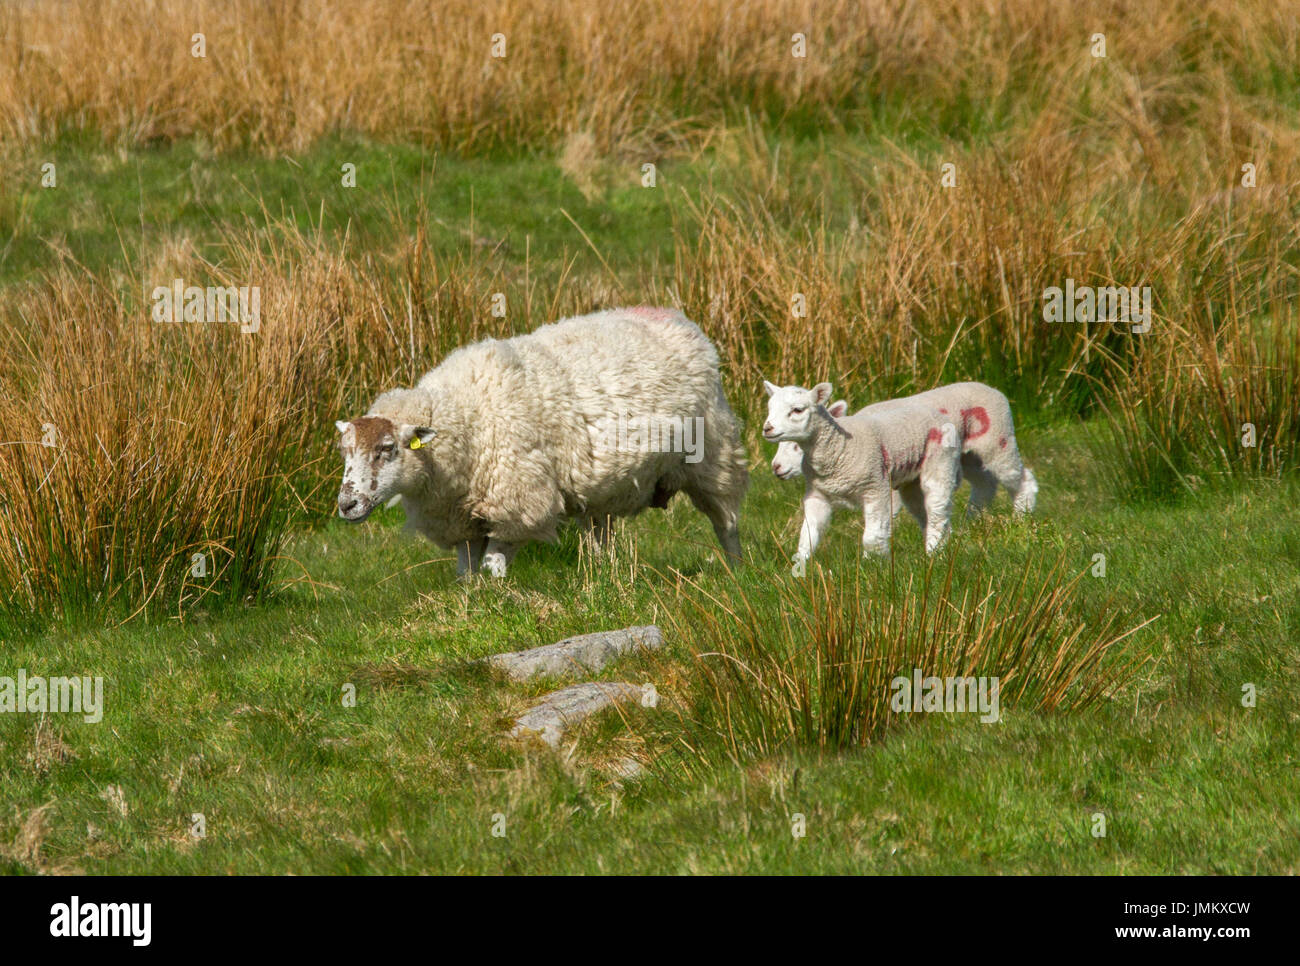 Herdwick sheep, heritage breed, with lambs in Lake District, England - Stock Image